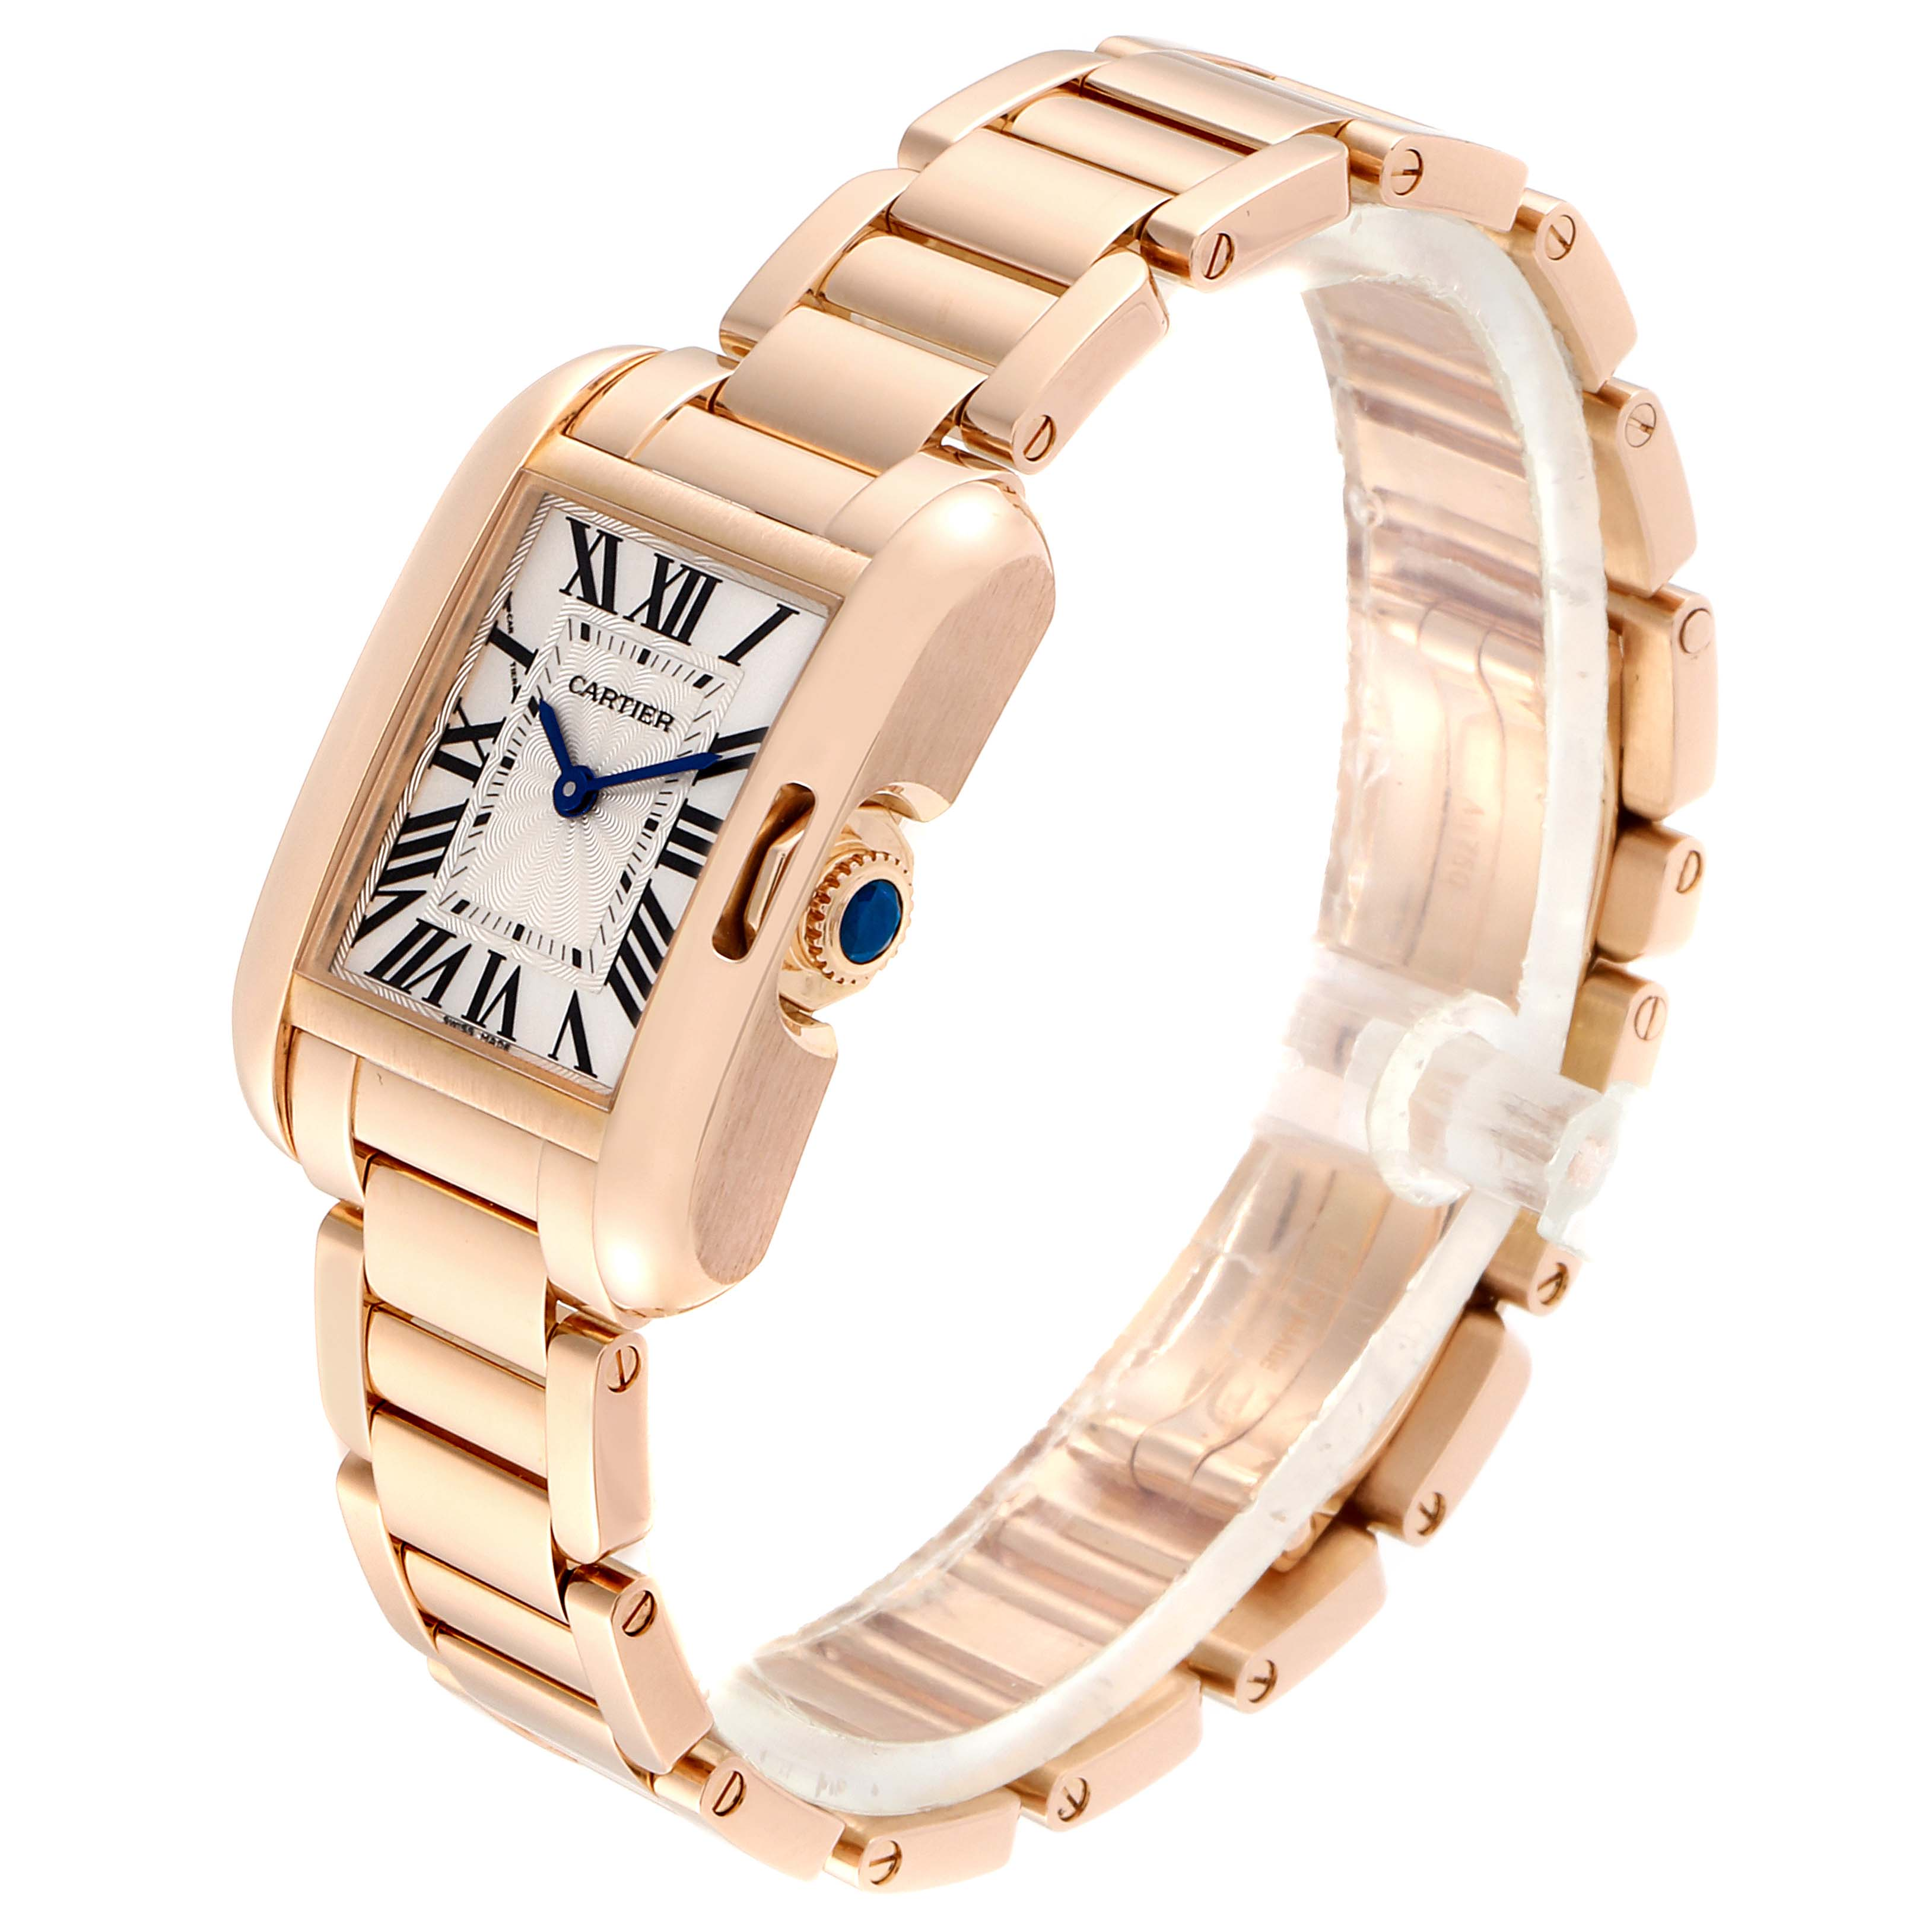 Cartier Tank Anglaise Small Silver Dial Rose Gold Ladies Watch W5310013 SwissWatchExpo